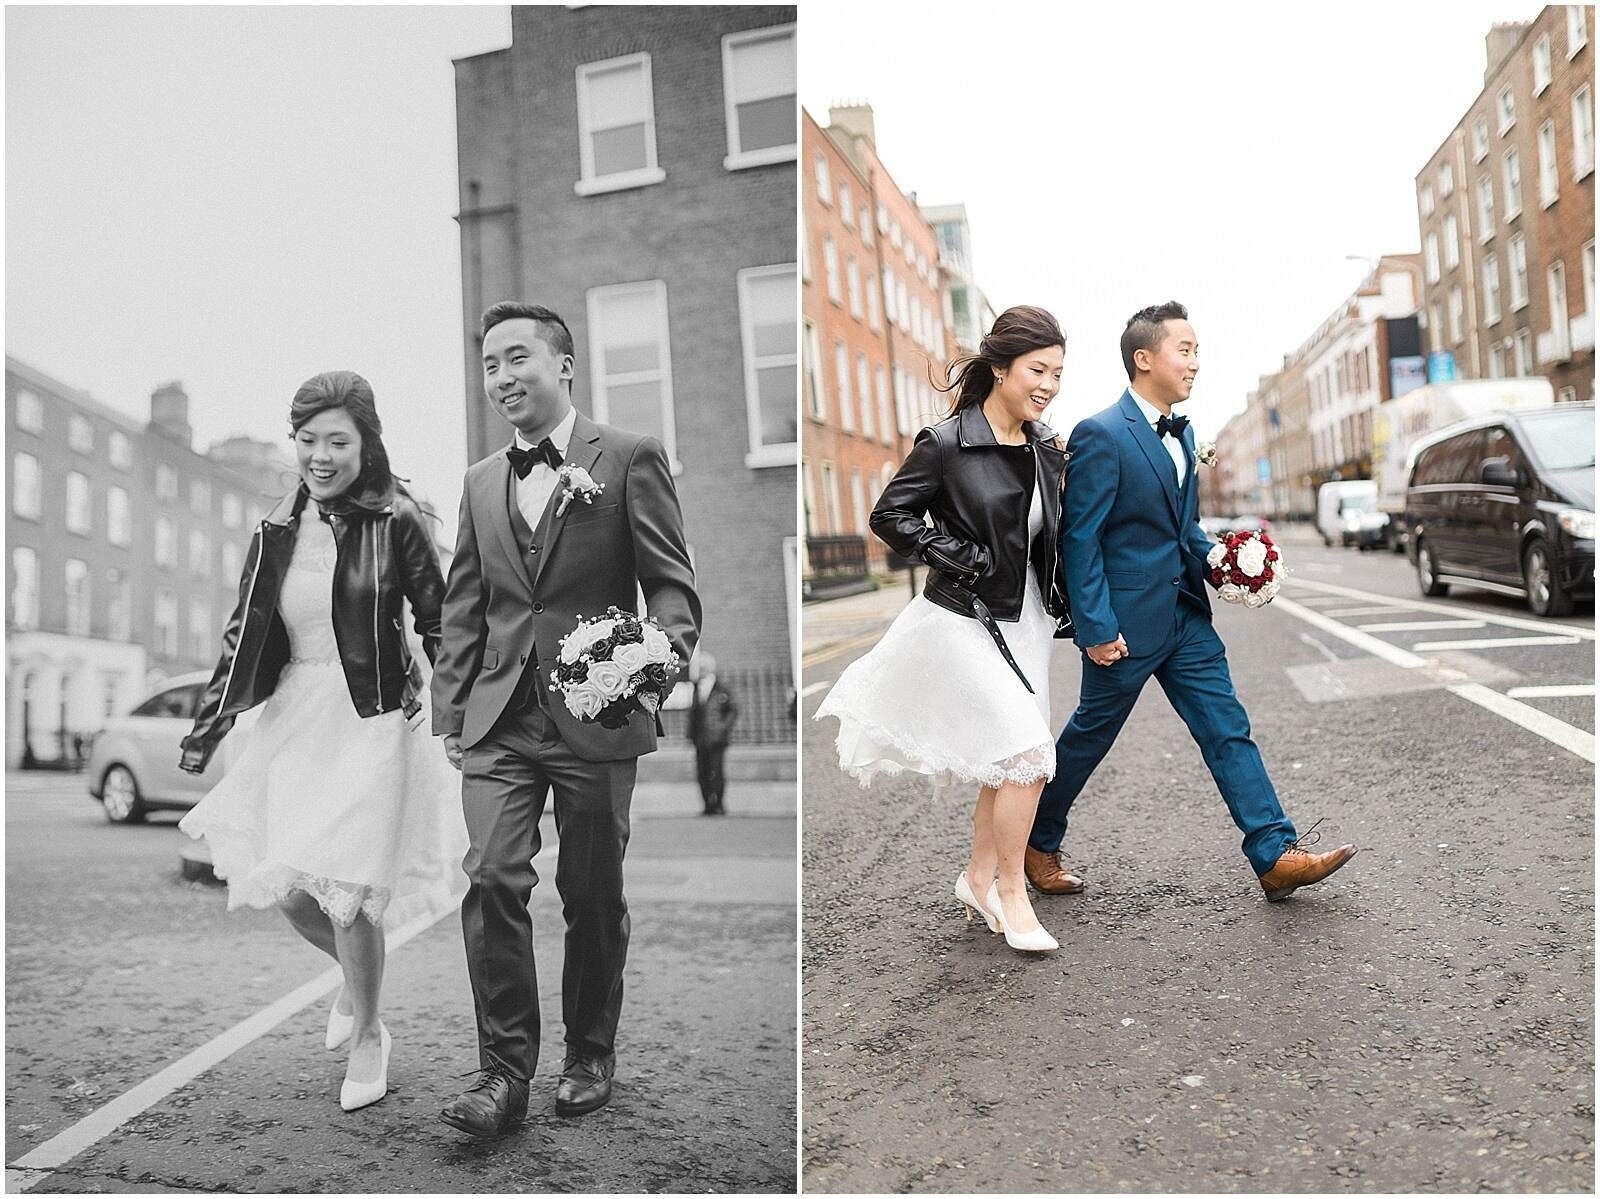 Sandy + Shekman - Elopement in Dublin City 8